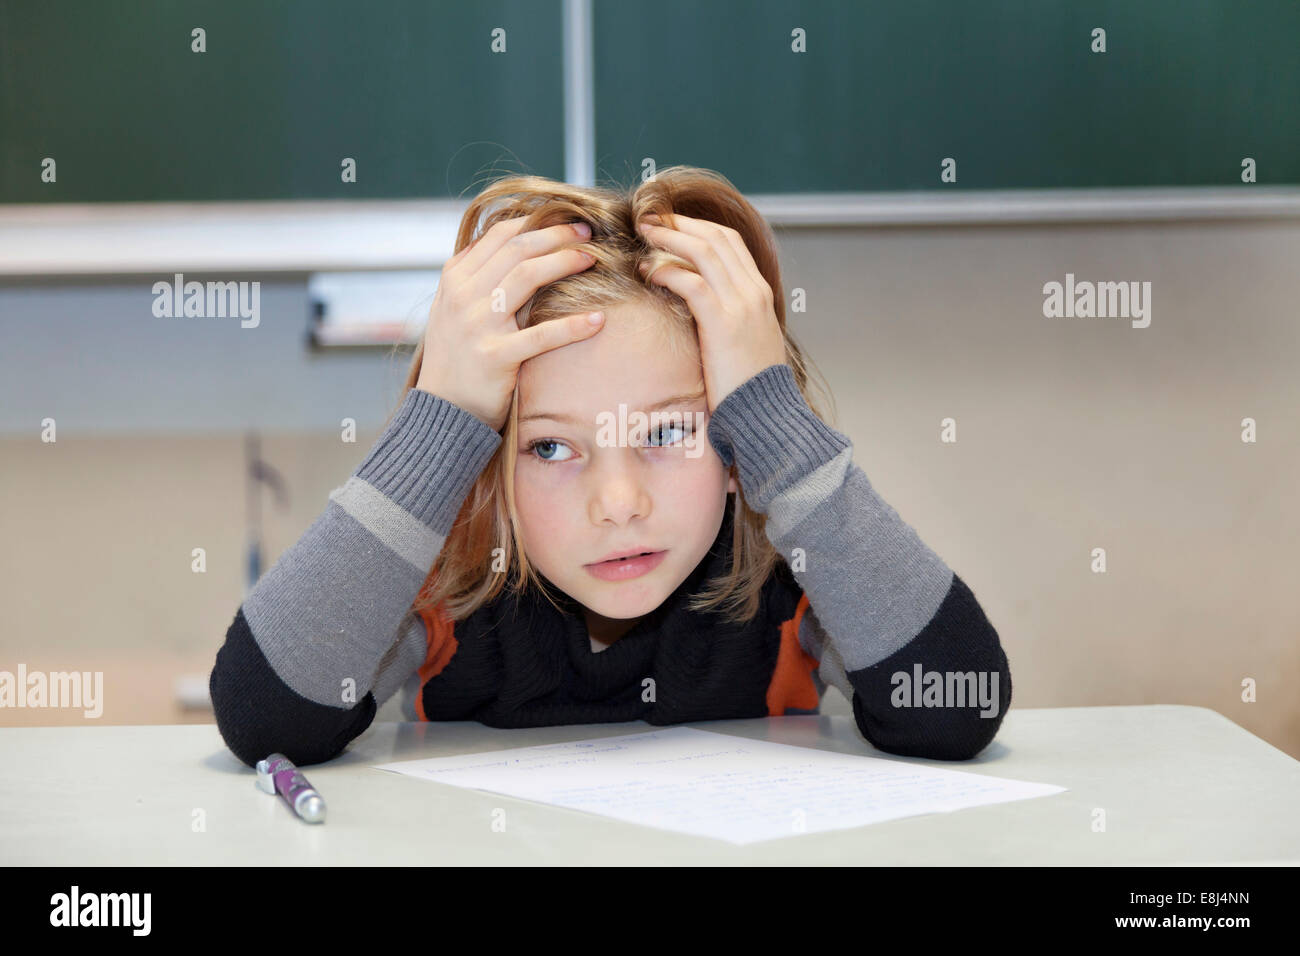 Schoolgirl, 9 years, struggling during a difficult exam Stock Photo